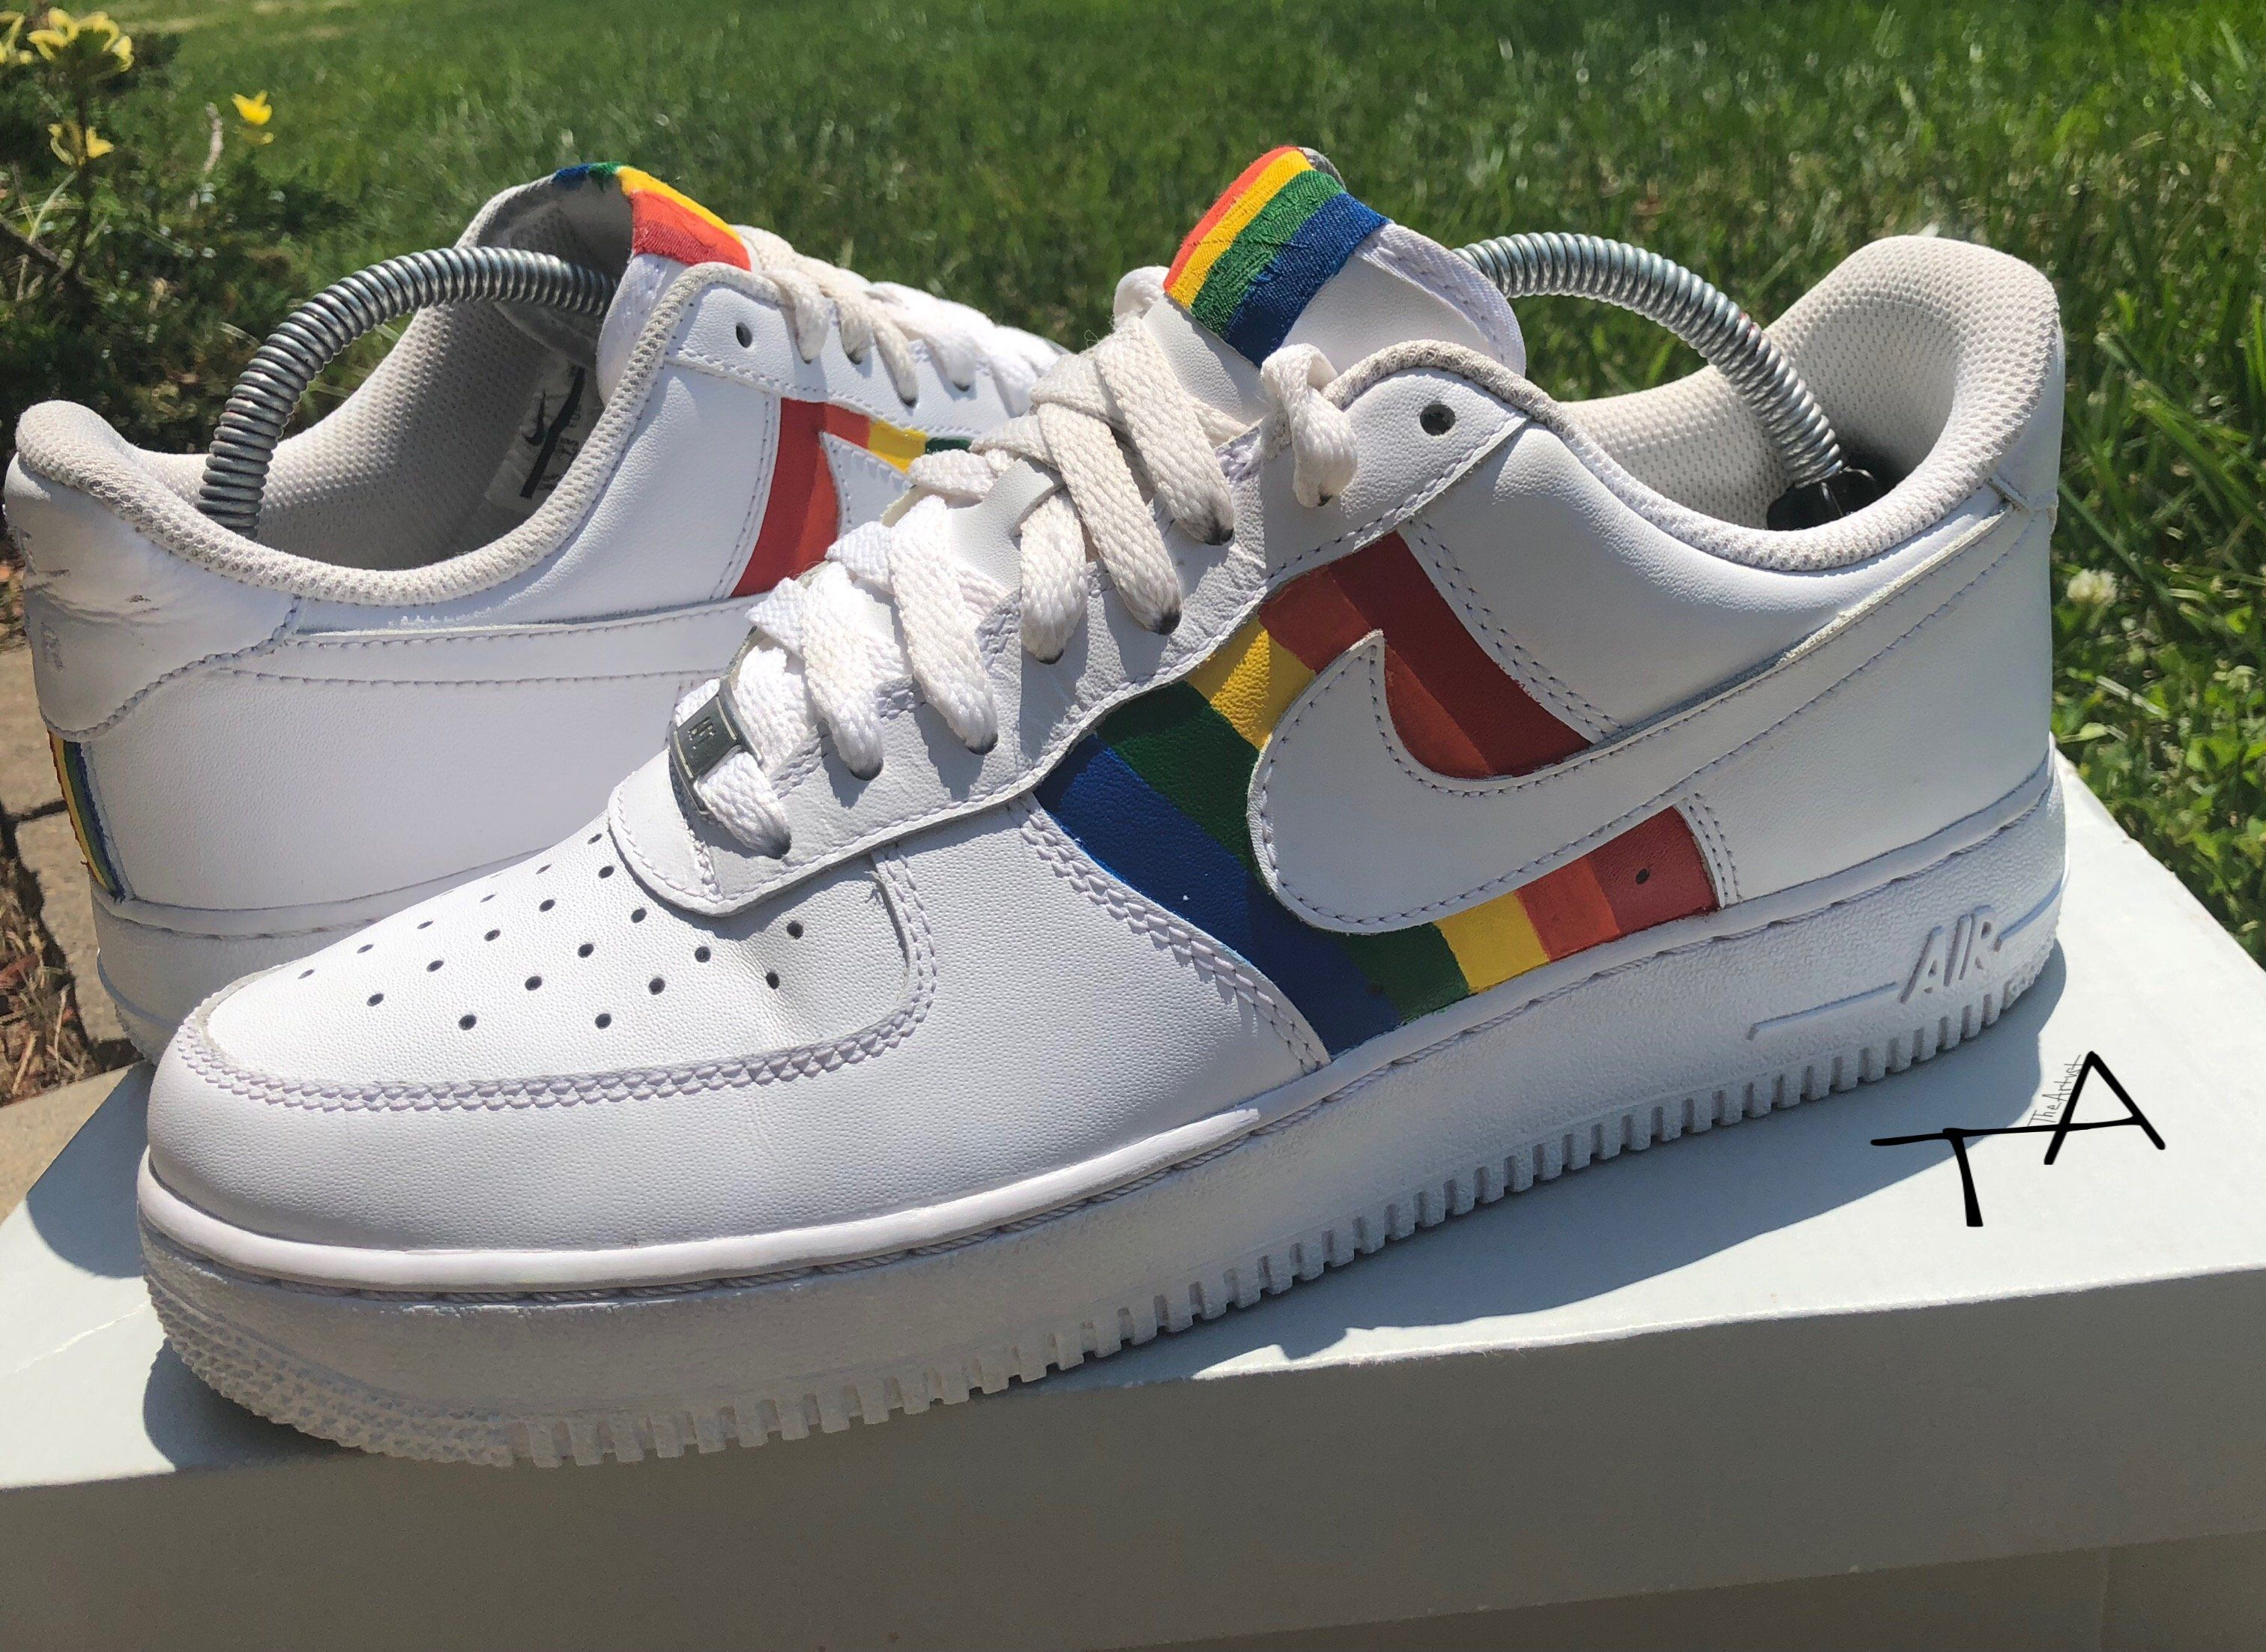 Nike Air Force 1 6ix9ine Rainbow Custom | Tenis | Zapatos